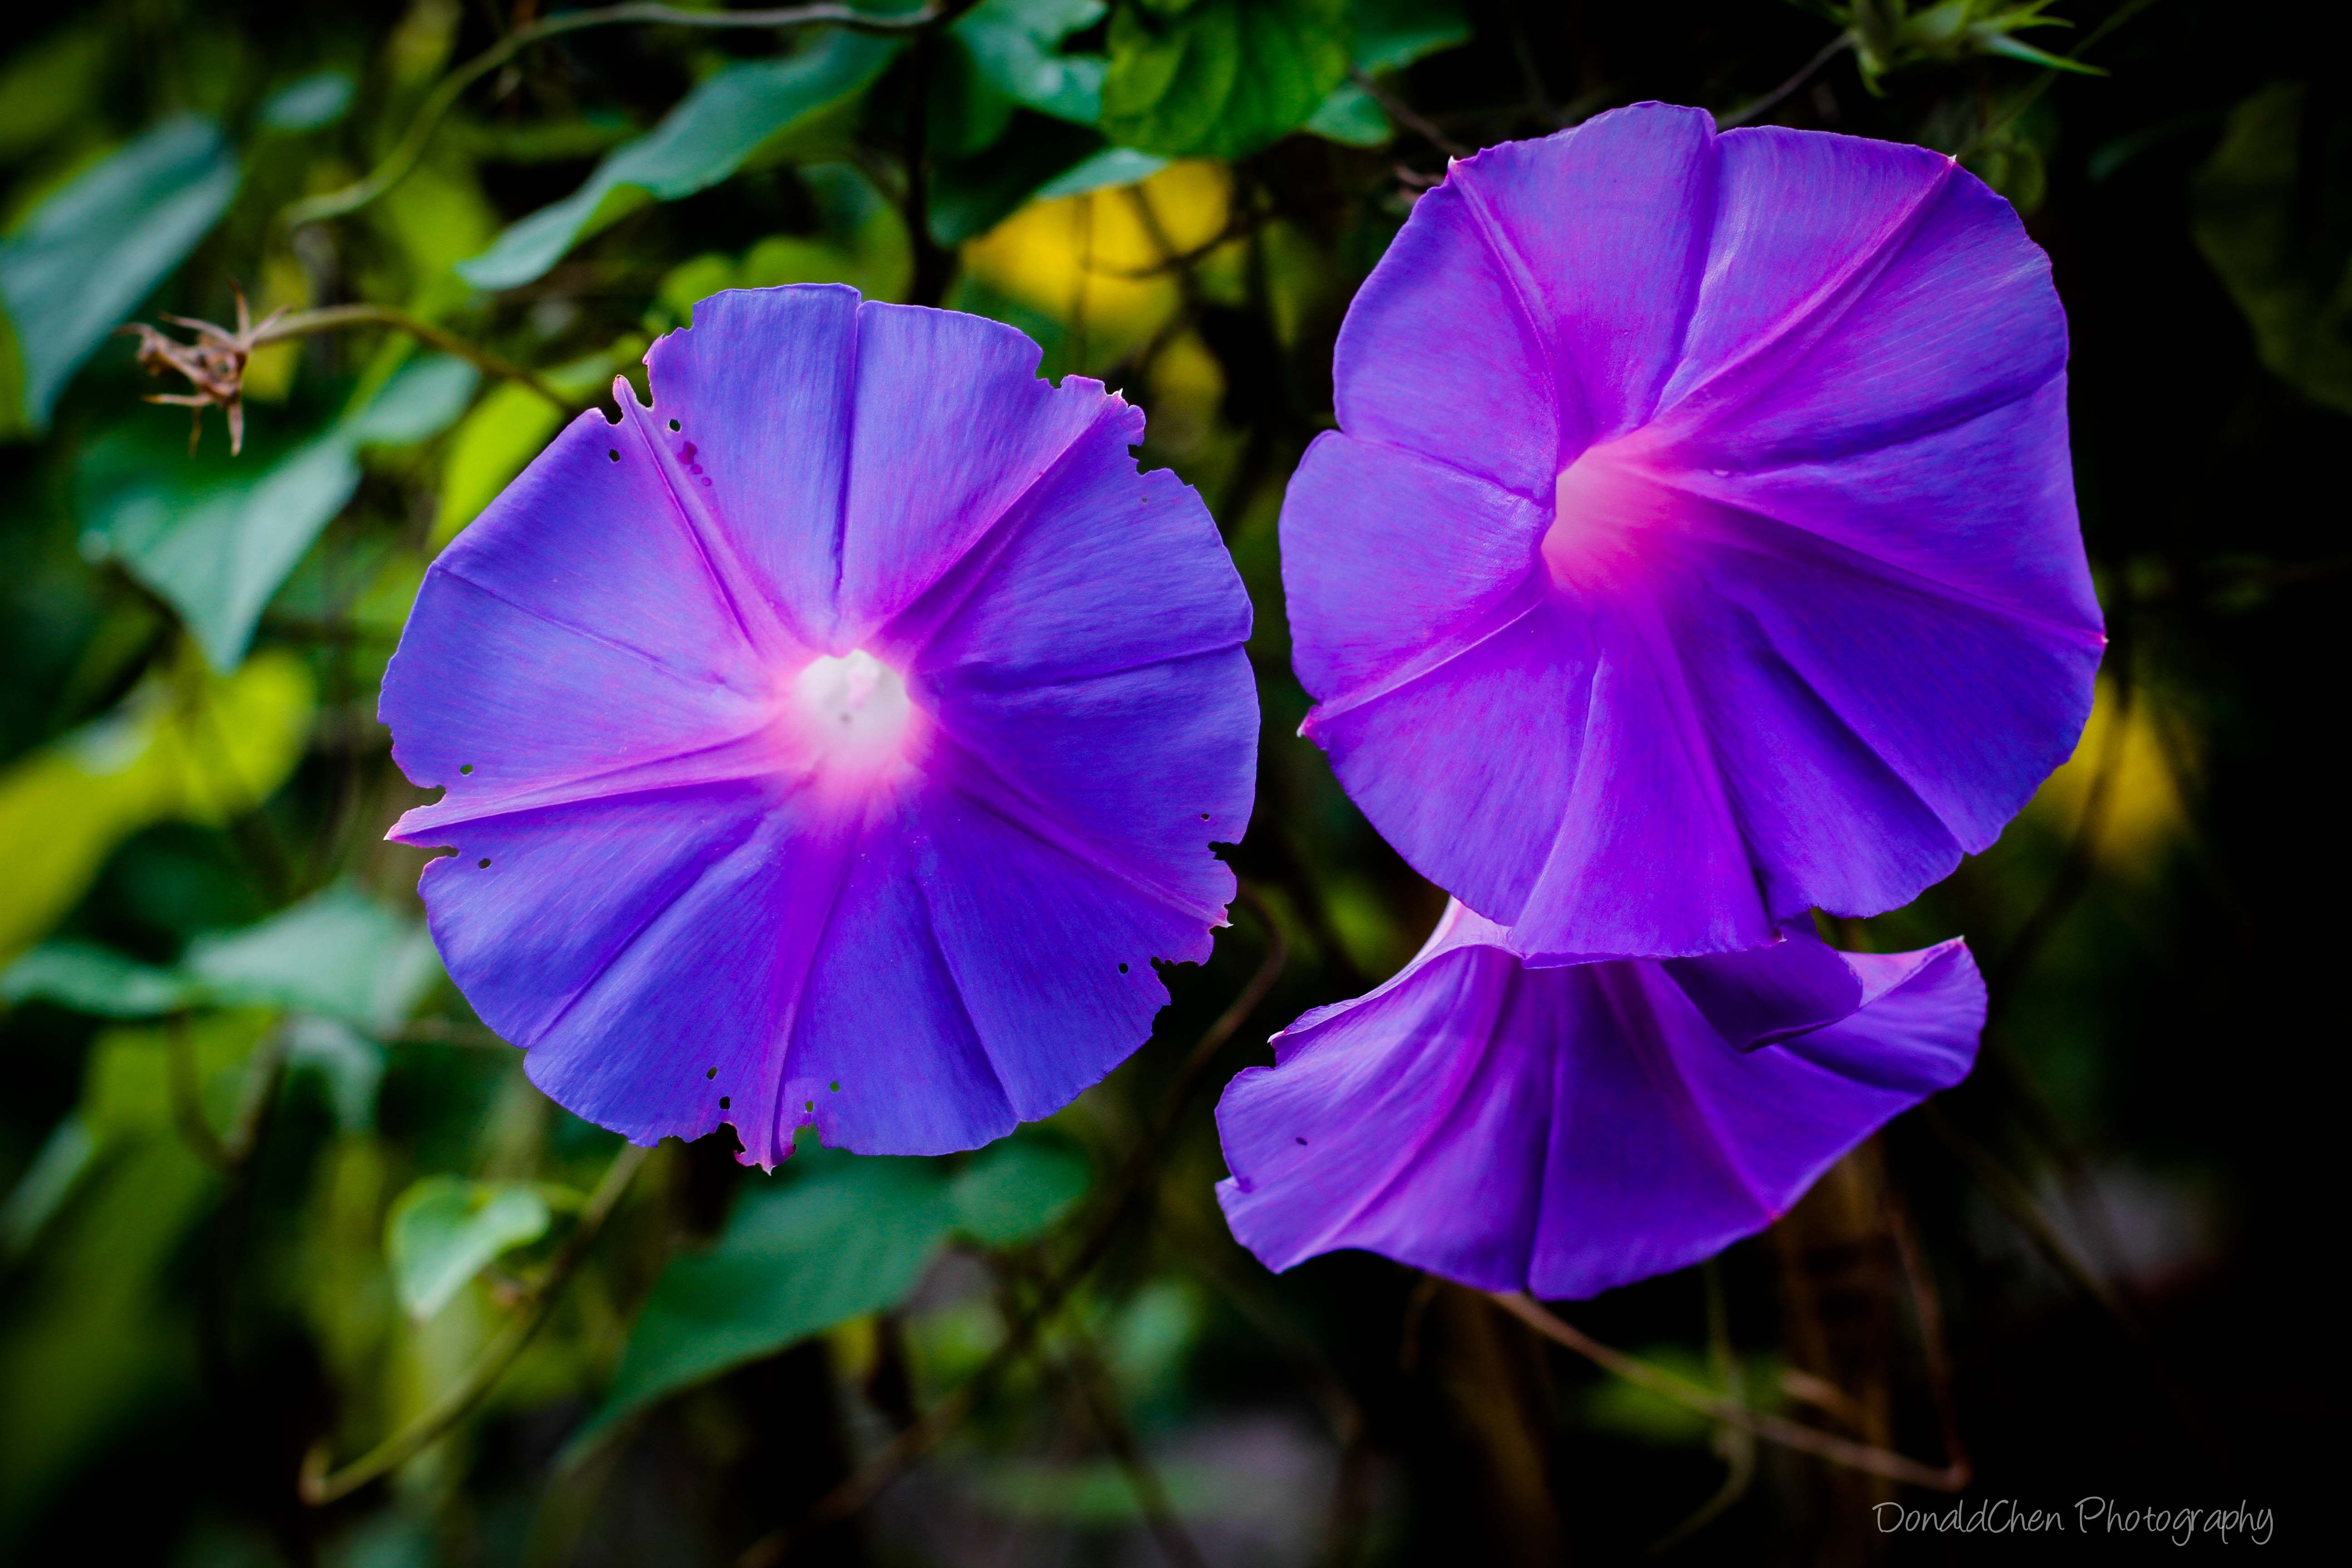 Ground Morning Glory Singapore Flower Its botanical name is Convolvulus Saba